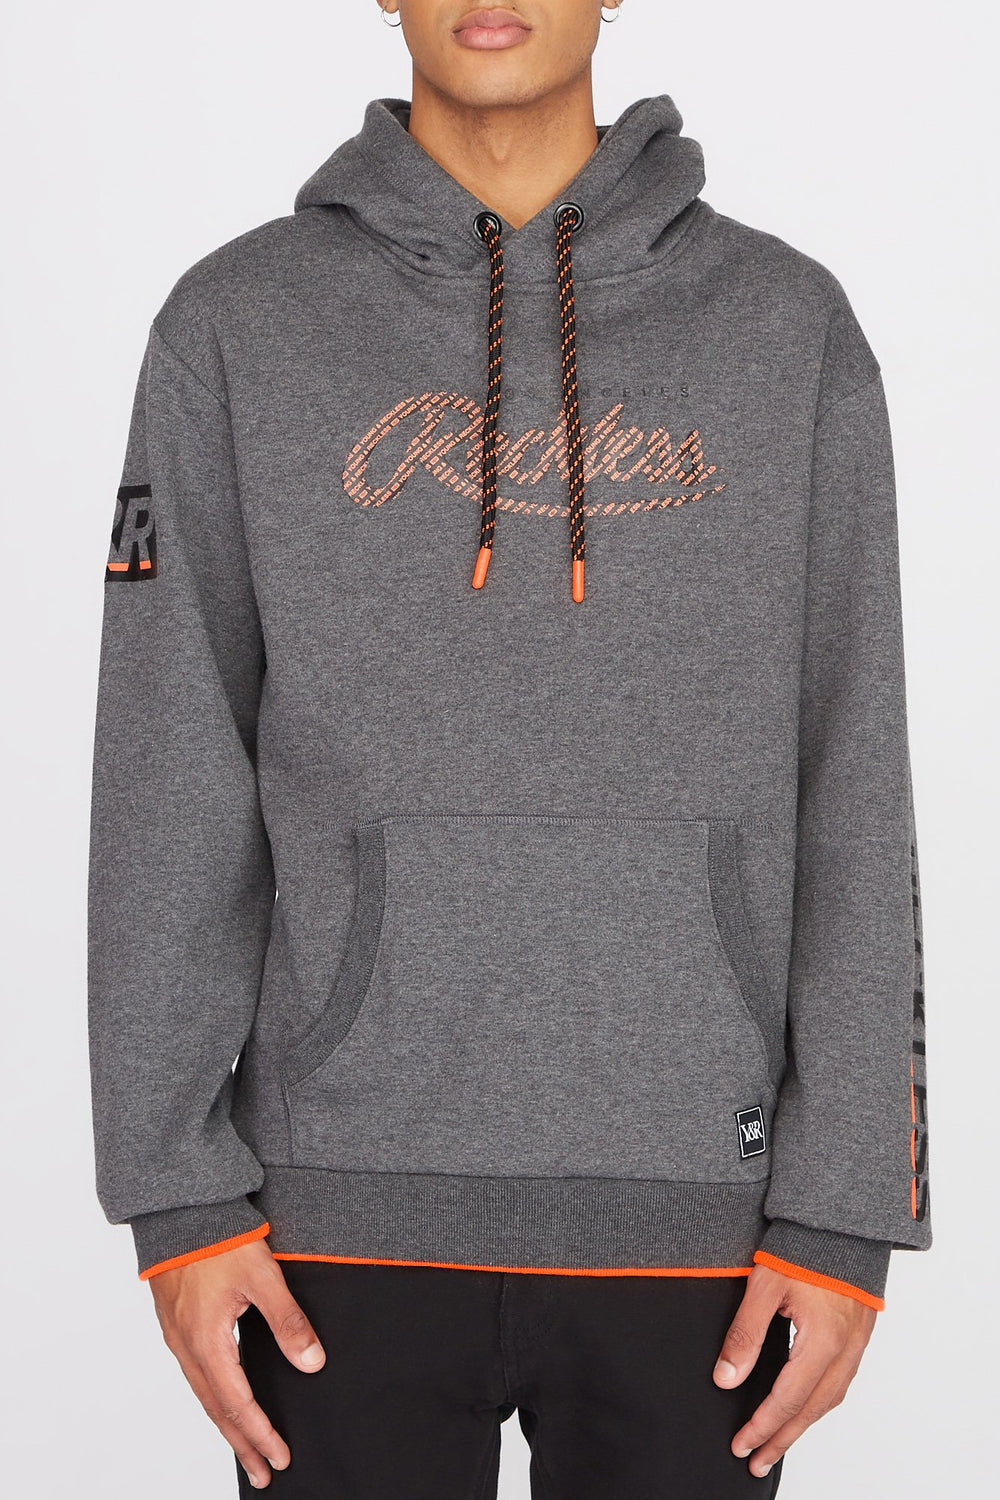 Young & Reckless Mens Neon Accented Hoodie Charcoal